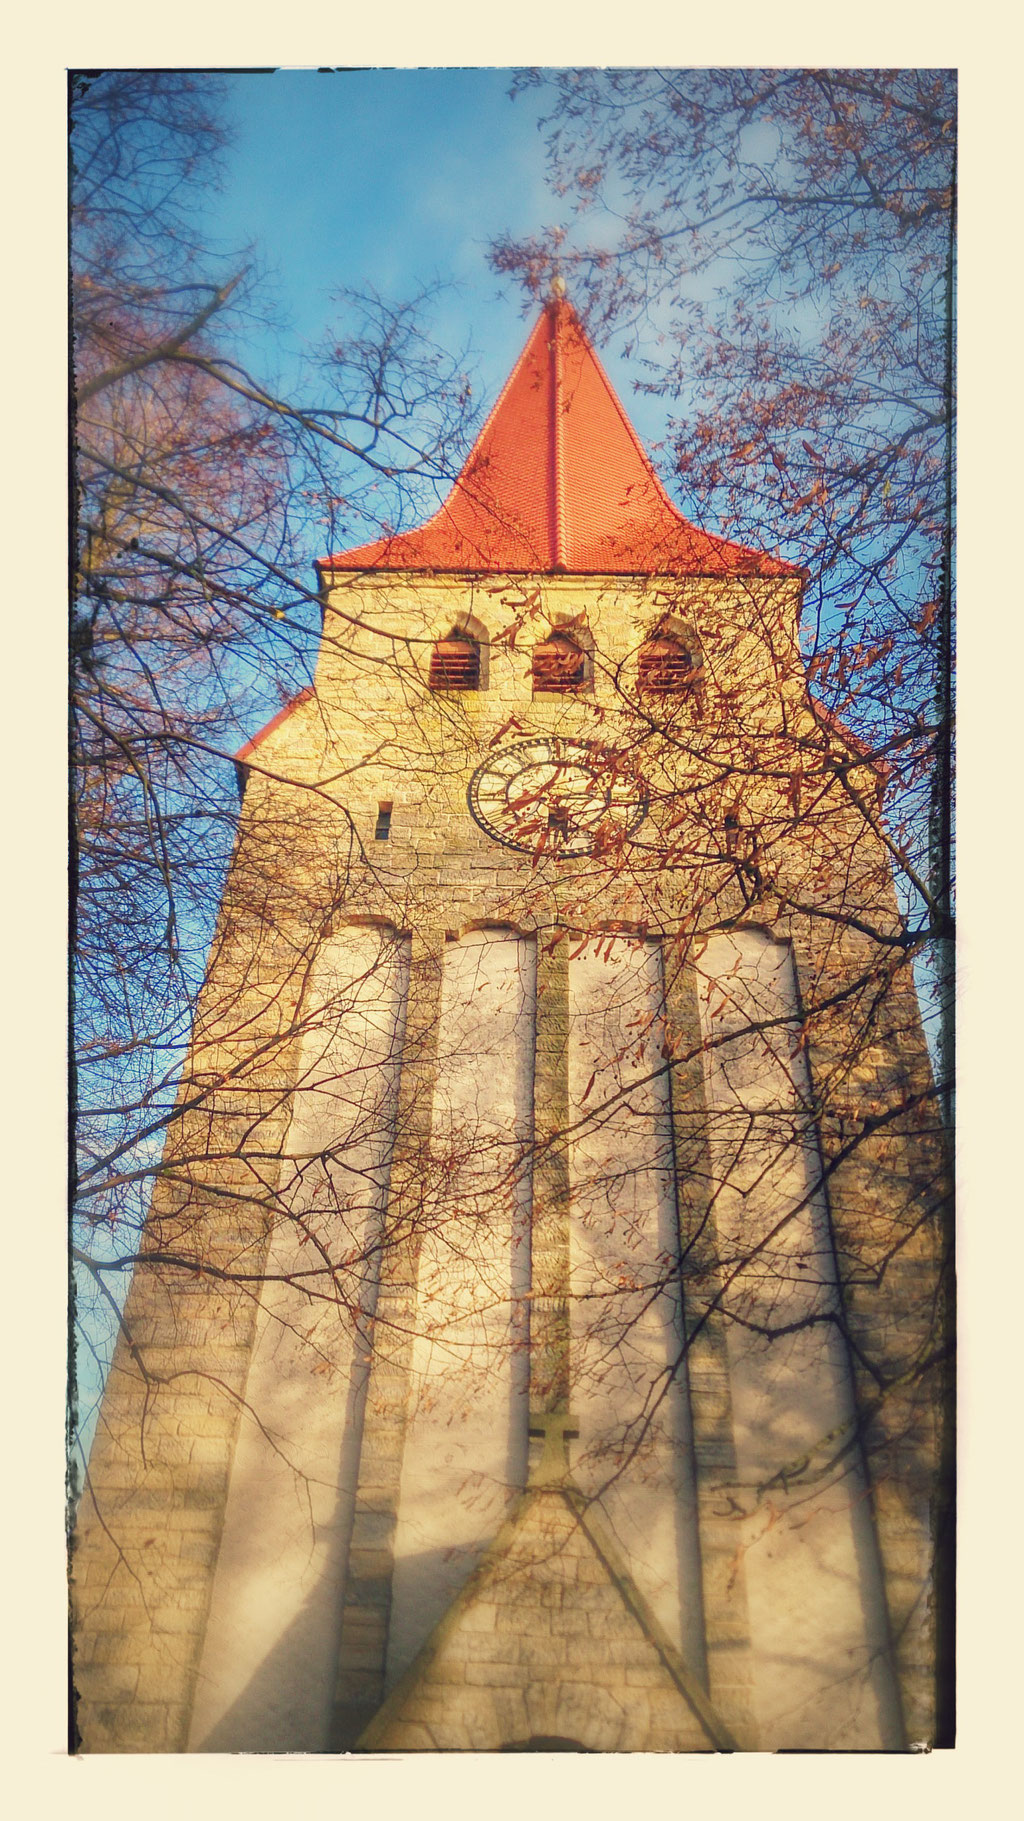 ~ Bild: Special Effects - 'Adenstedt, St. Briccius Church' - 2 - ~